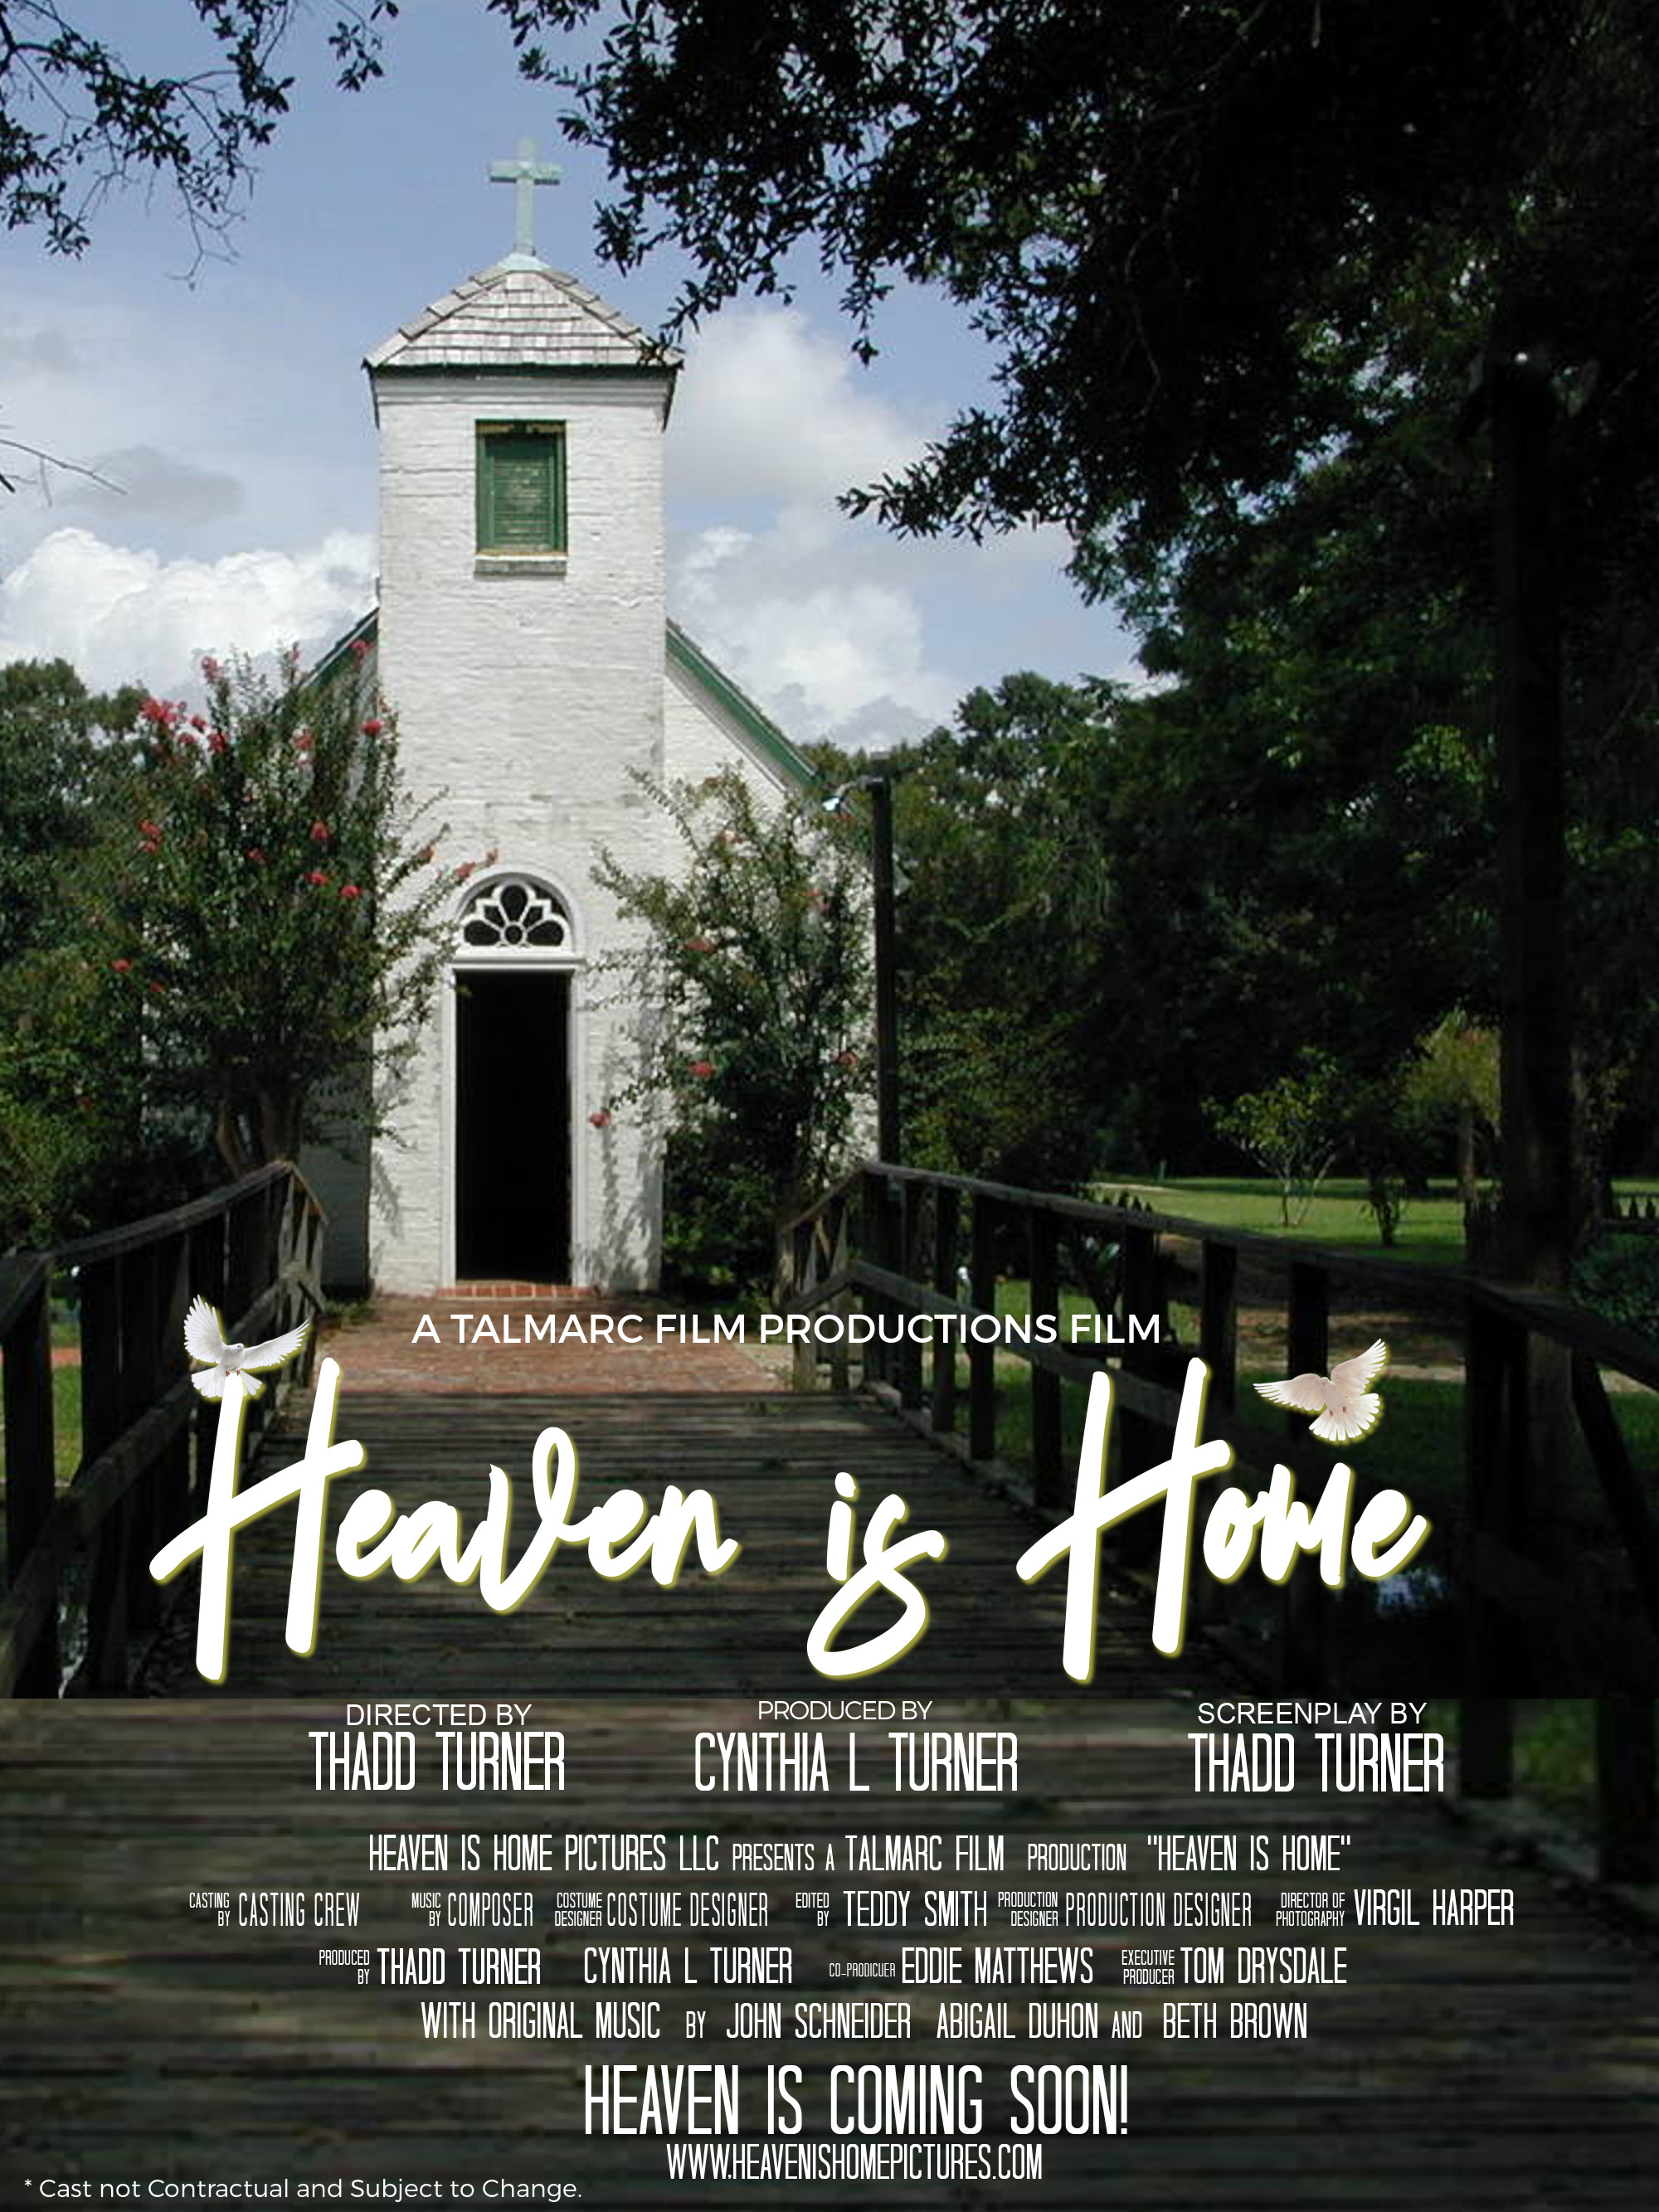 HEAVEN IS HOME Movie Poster no actors